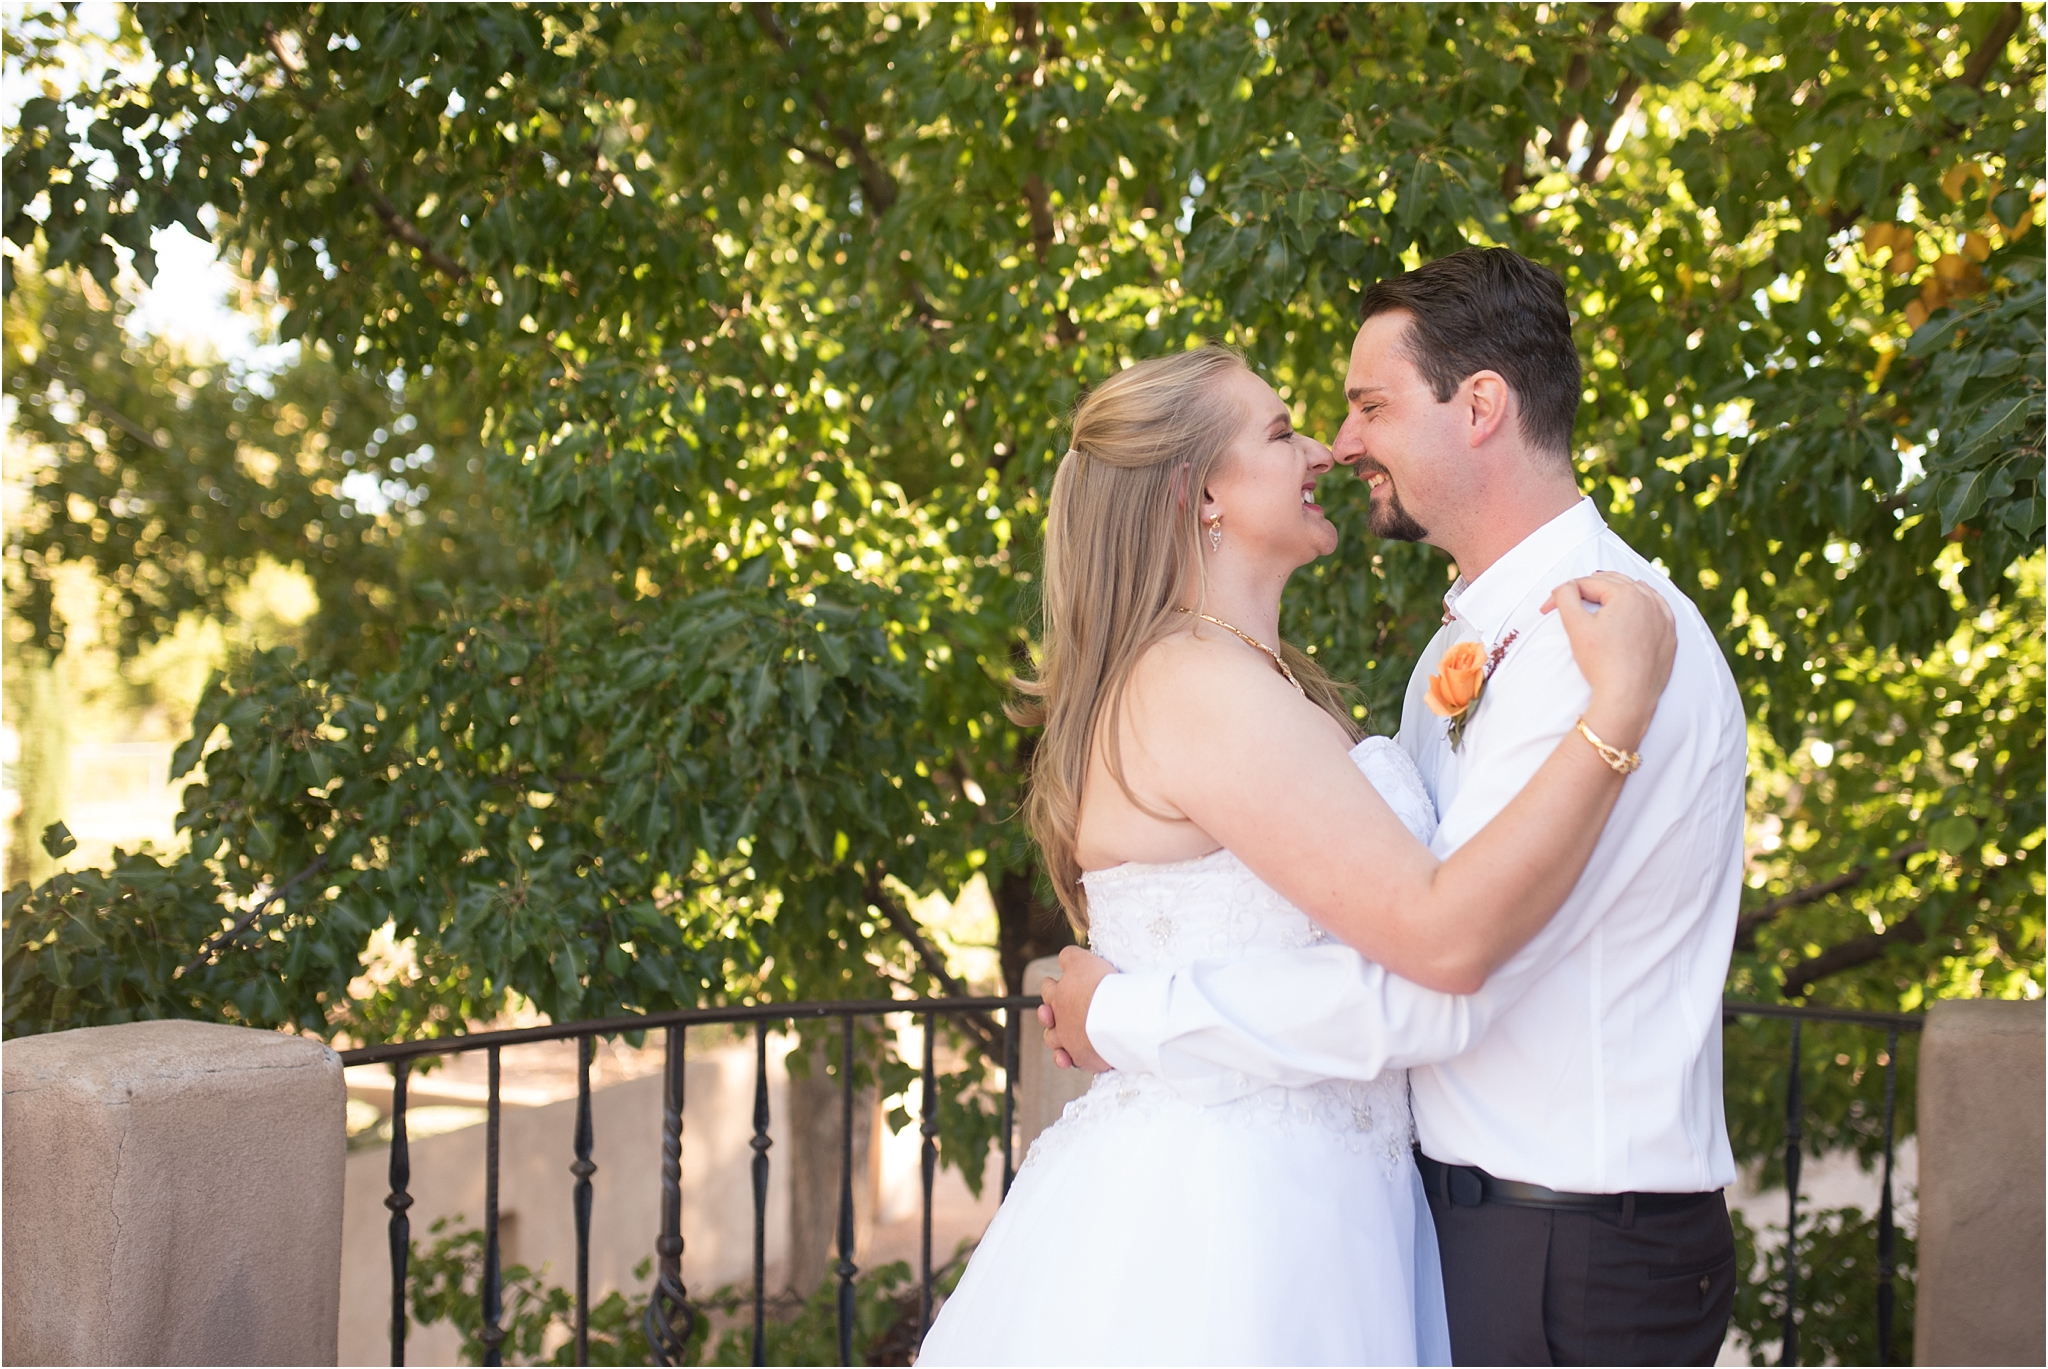 kayla kitts photography - albuquerque wedding photographer - new mexico wedding photographer - desination wedding photographer - cabo wedding photographer_0052.jpg